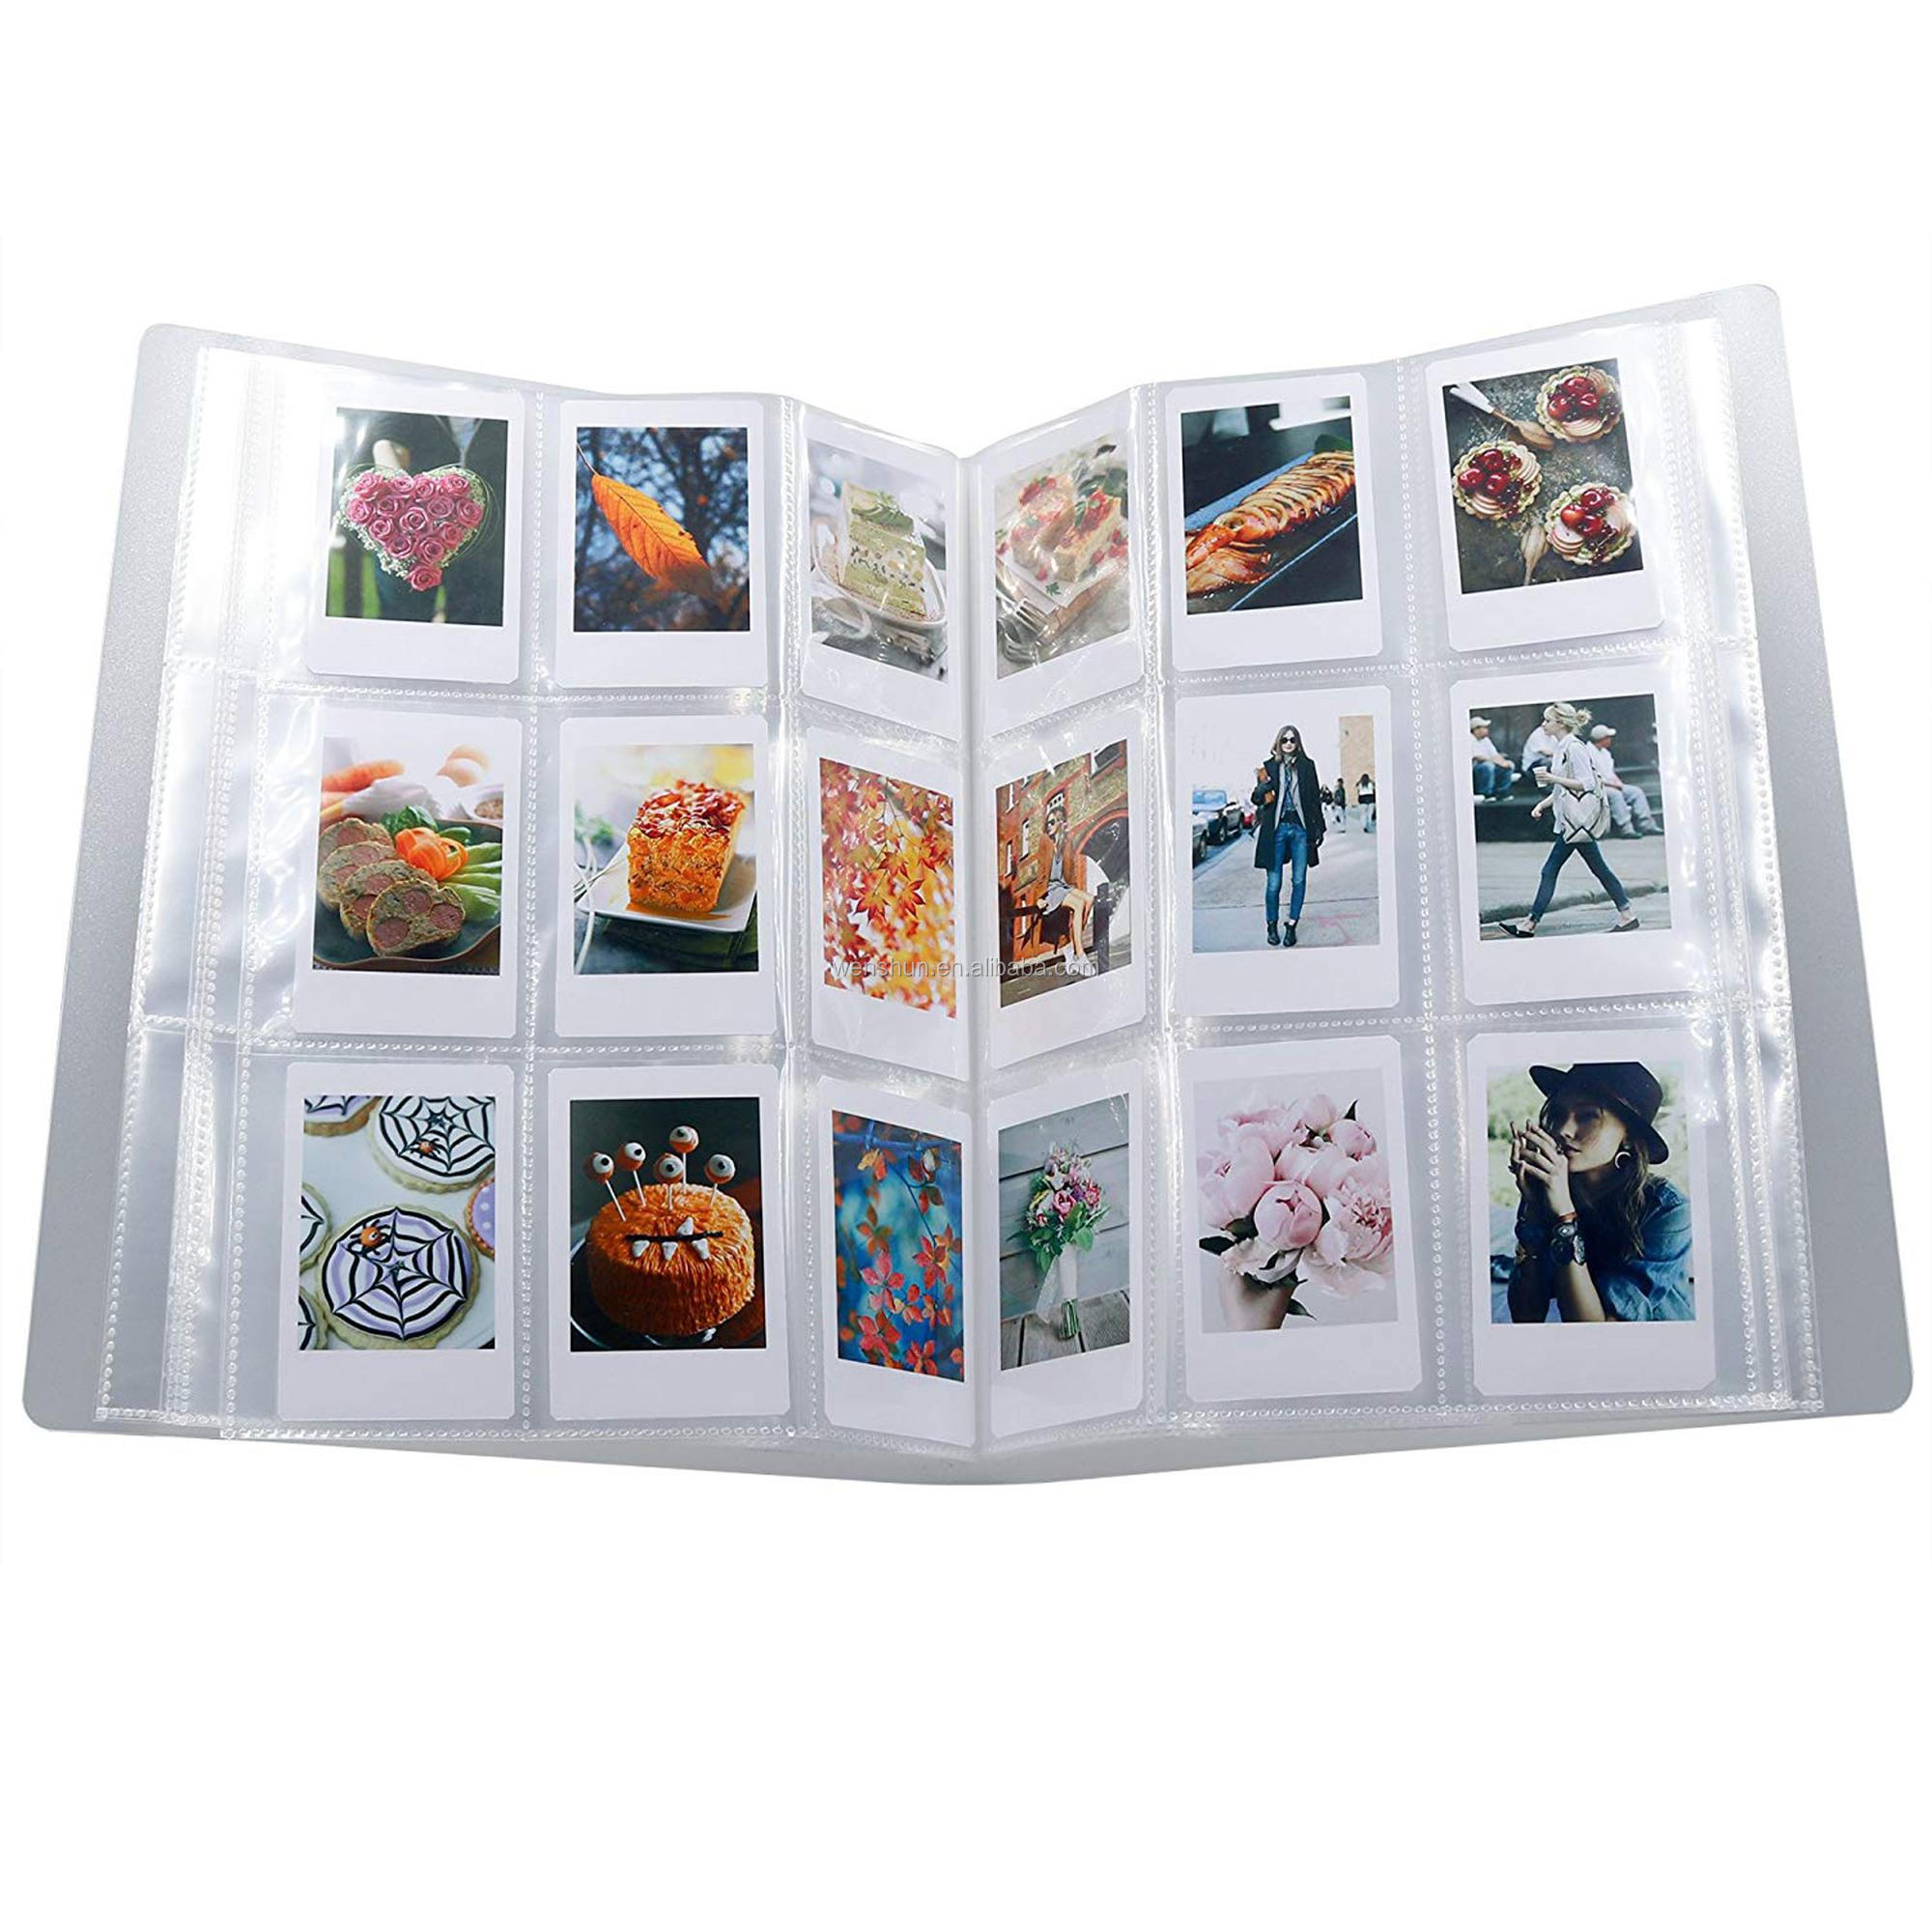 288 Pockets 3-Inch Pack of 9 Instax Mini Clear Transparent Photo Album for Fujifilm, Business Card,Ticket Holder